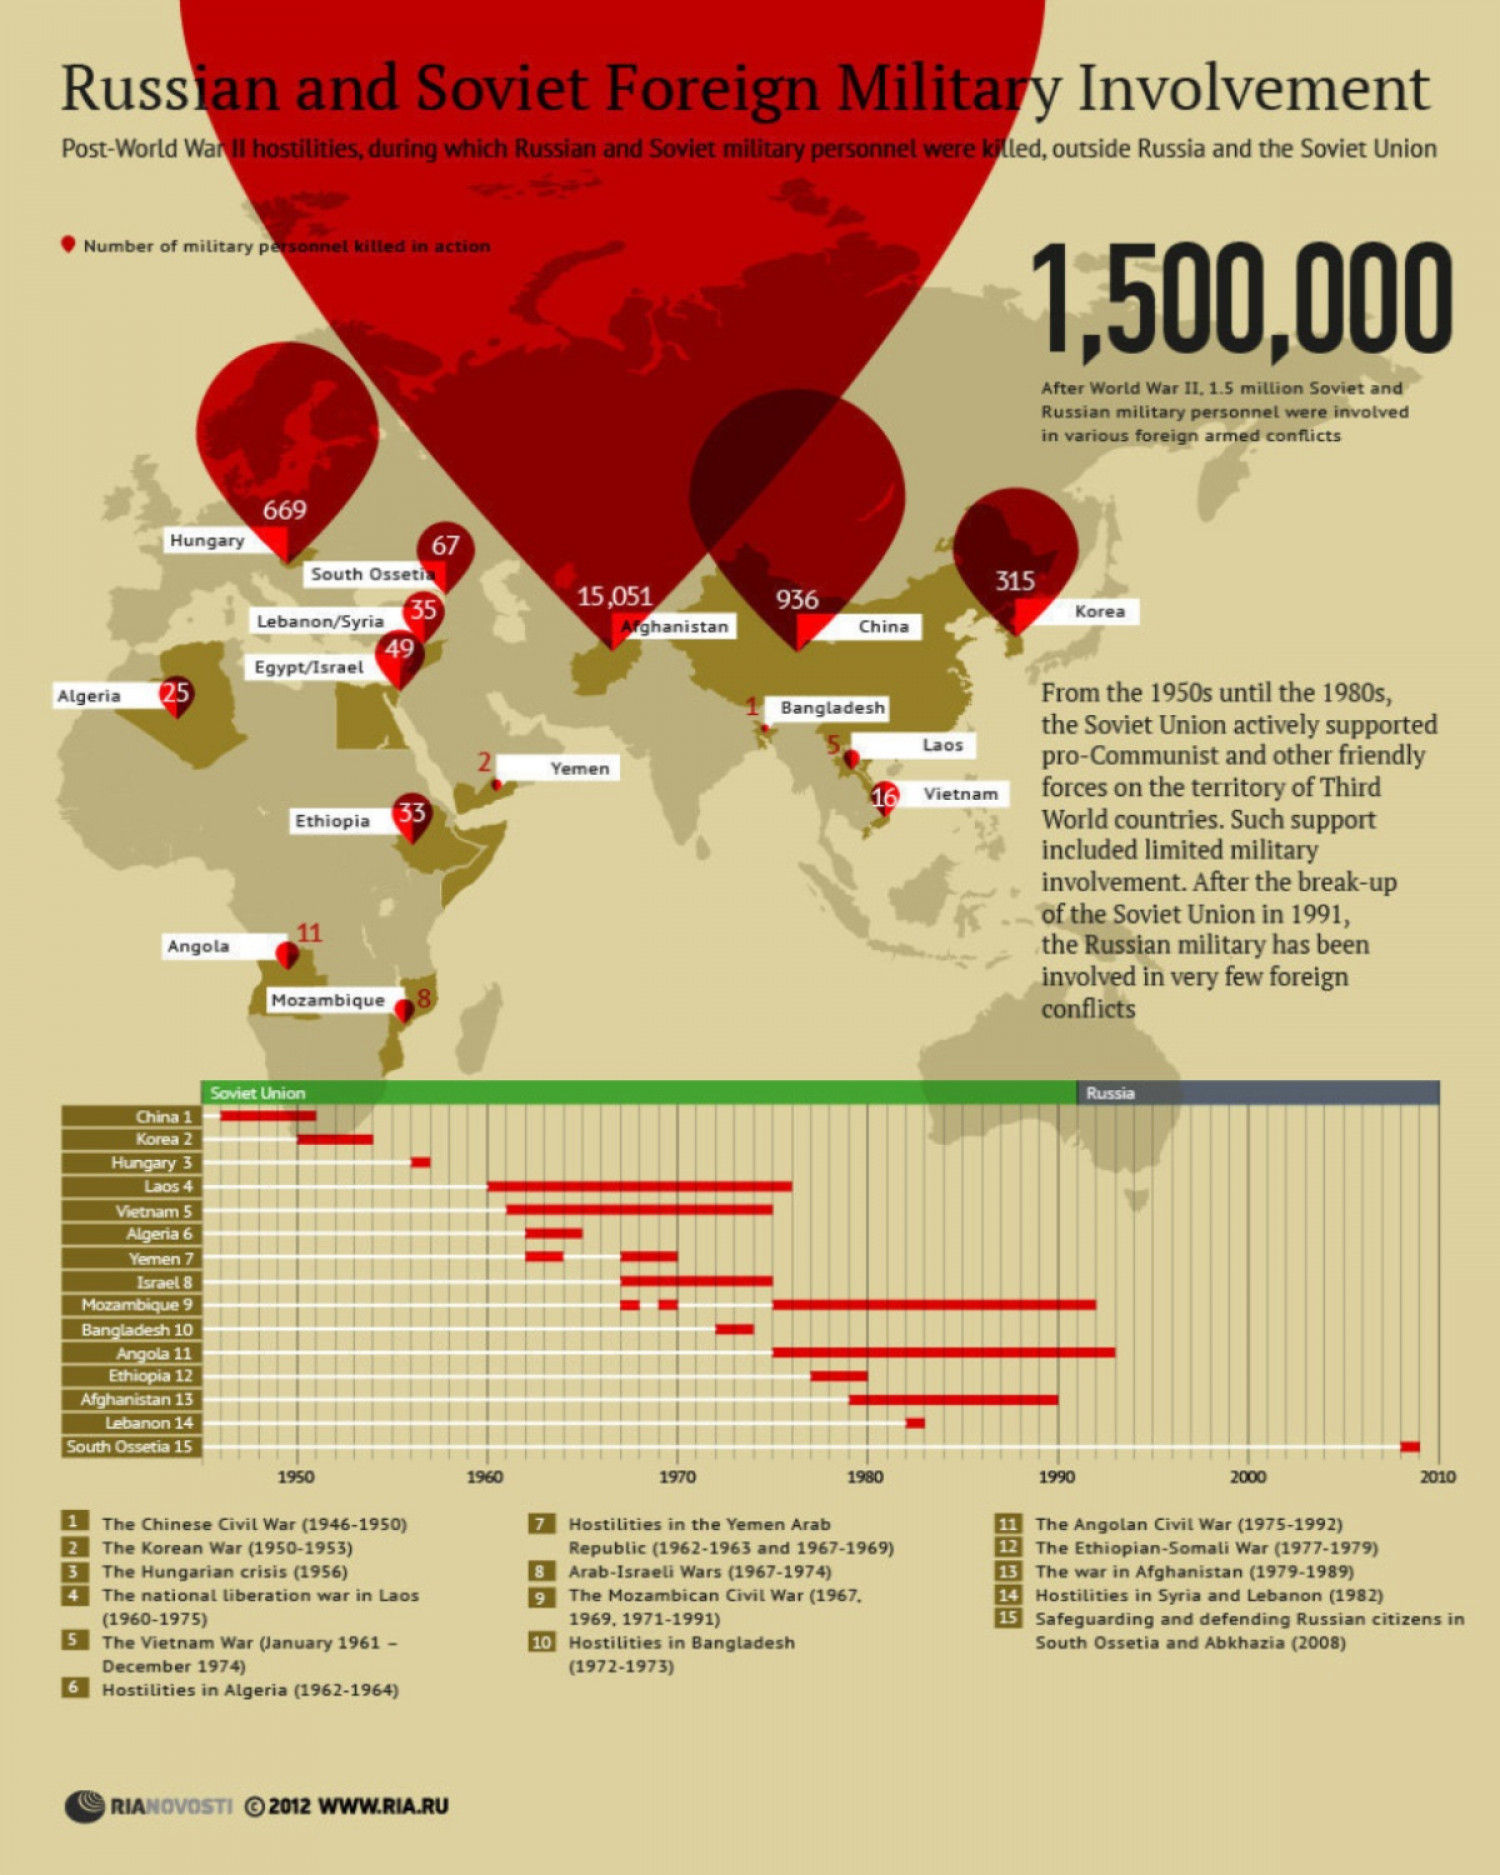 Russian and Soviet Foreign Military Involvment Infographic